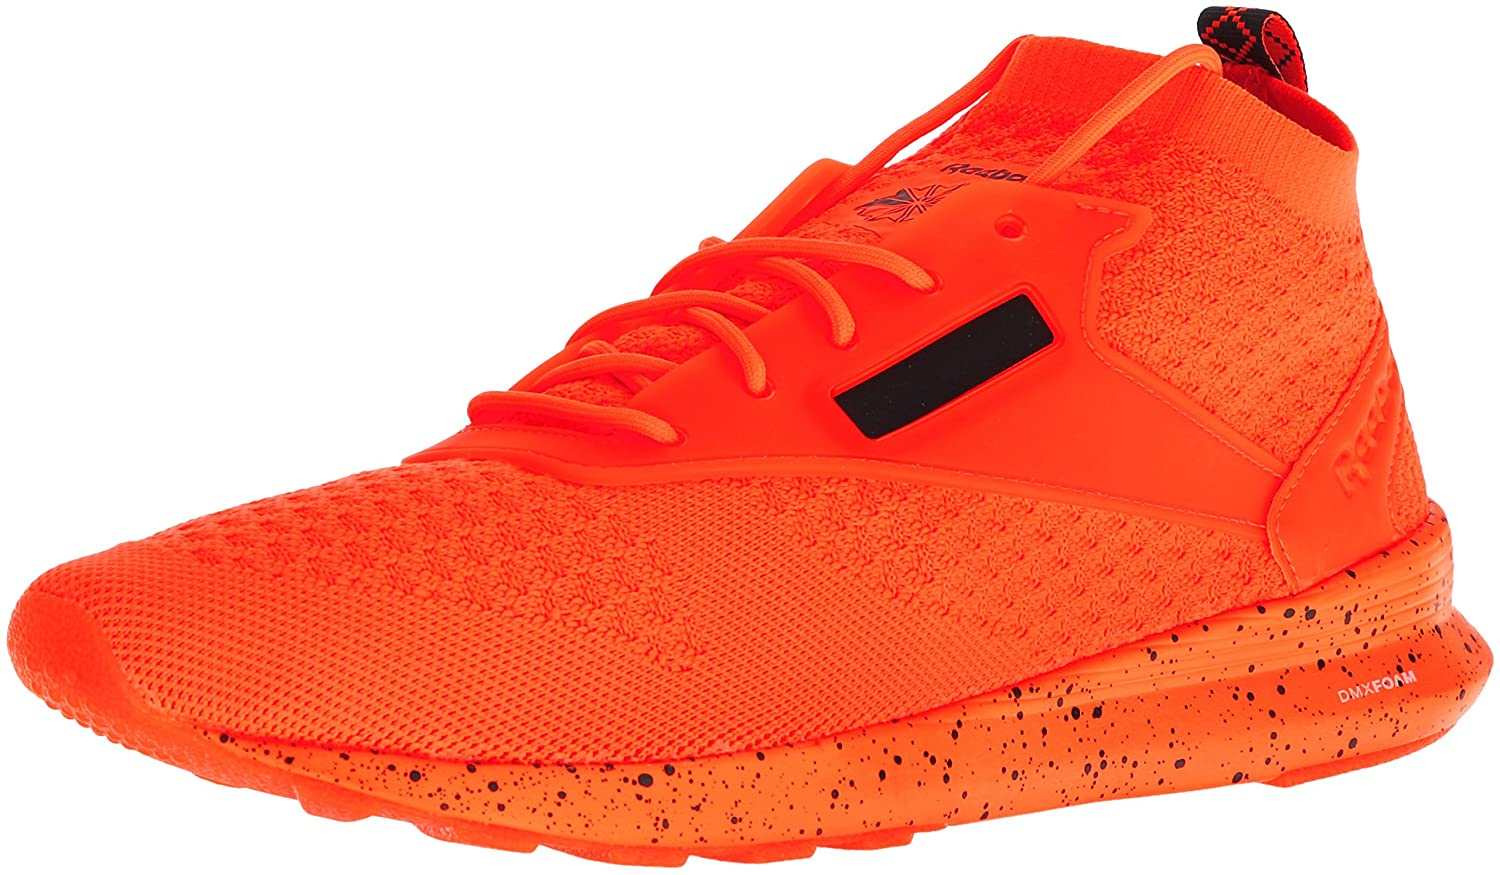 [リーボック] スニーカー ZOKU RUNNER HM B0747VKZ61 Solar Orange D(M) Orange/Black/White/Black Orange/Black/White/White 12 D(M) US 12 D(M) US|Solar Orange/Black/White, ブランドストリートブラスト:e470fffc --- mail.guayson.mx